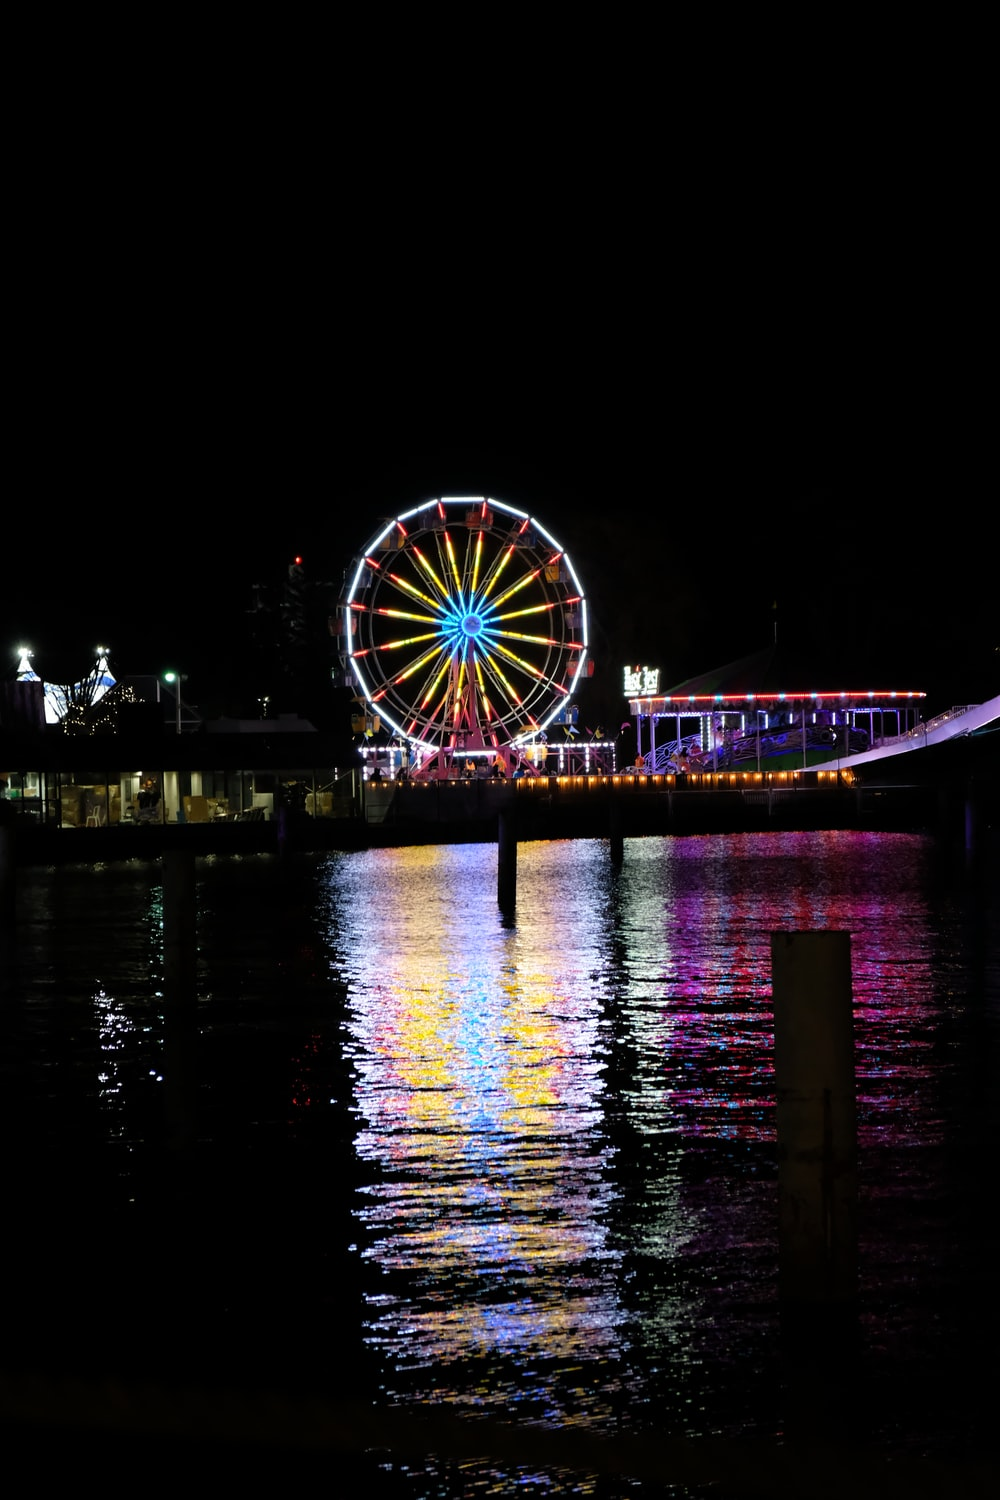 lighted Ferris wheel reflecting on body of water